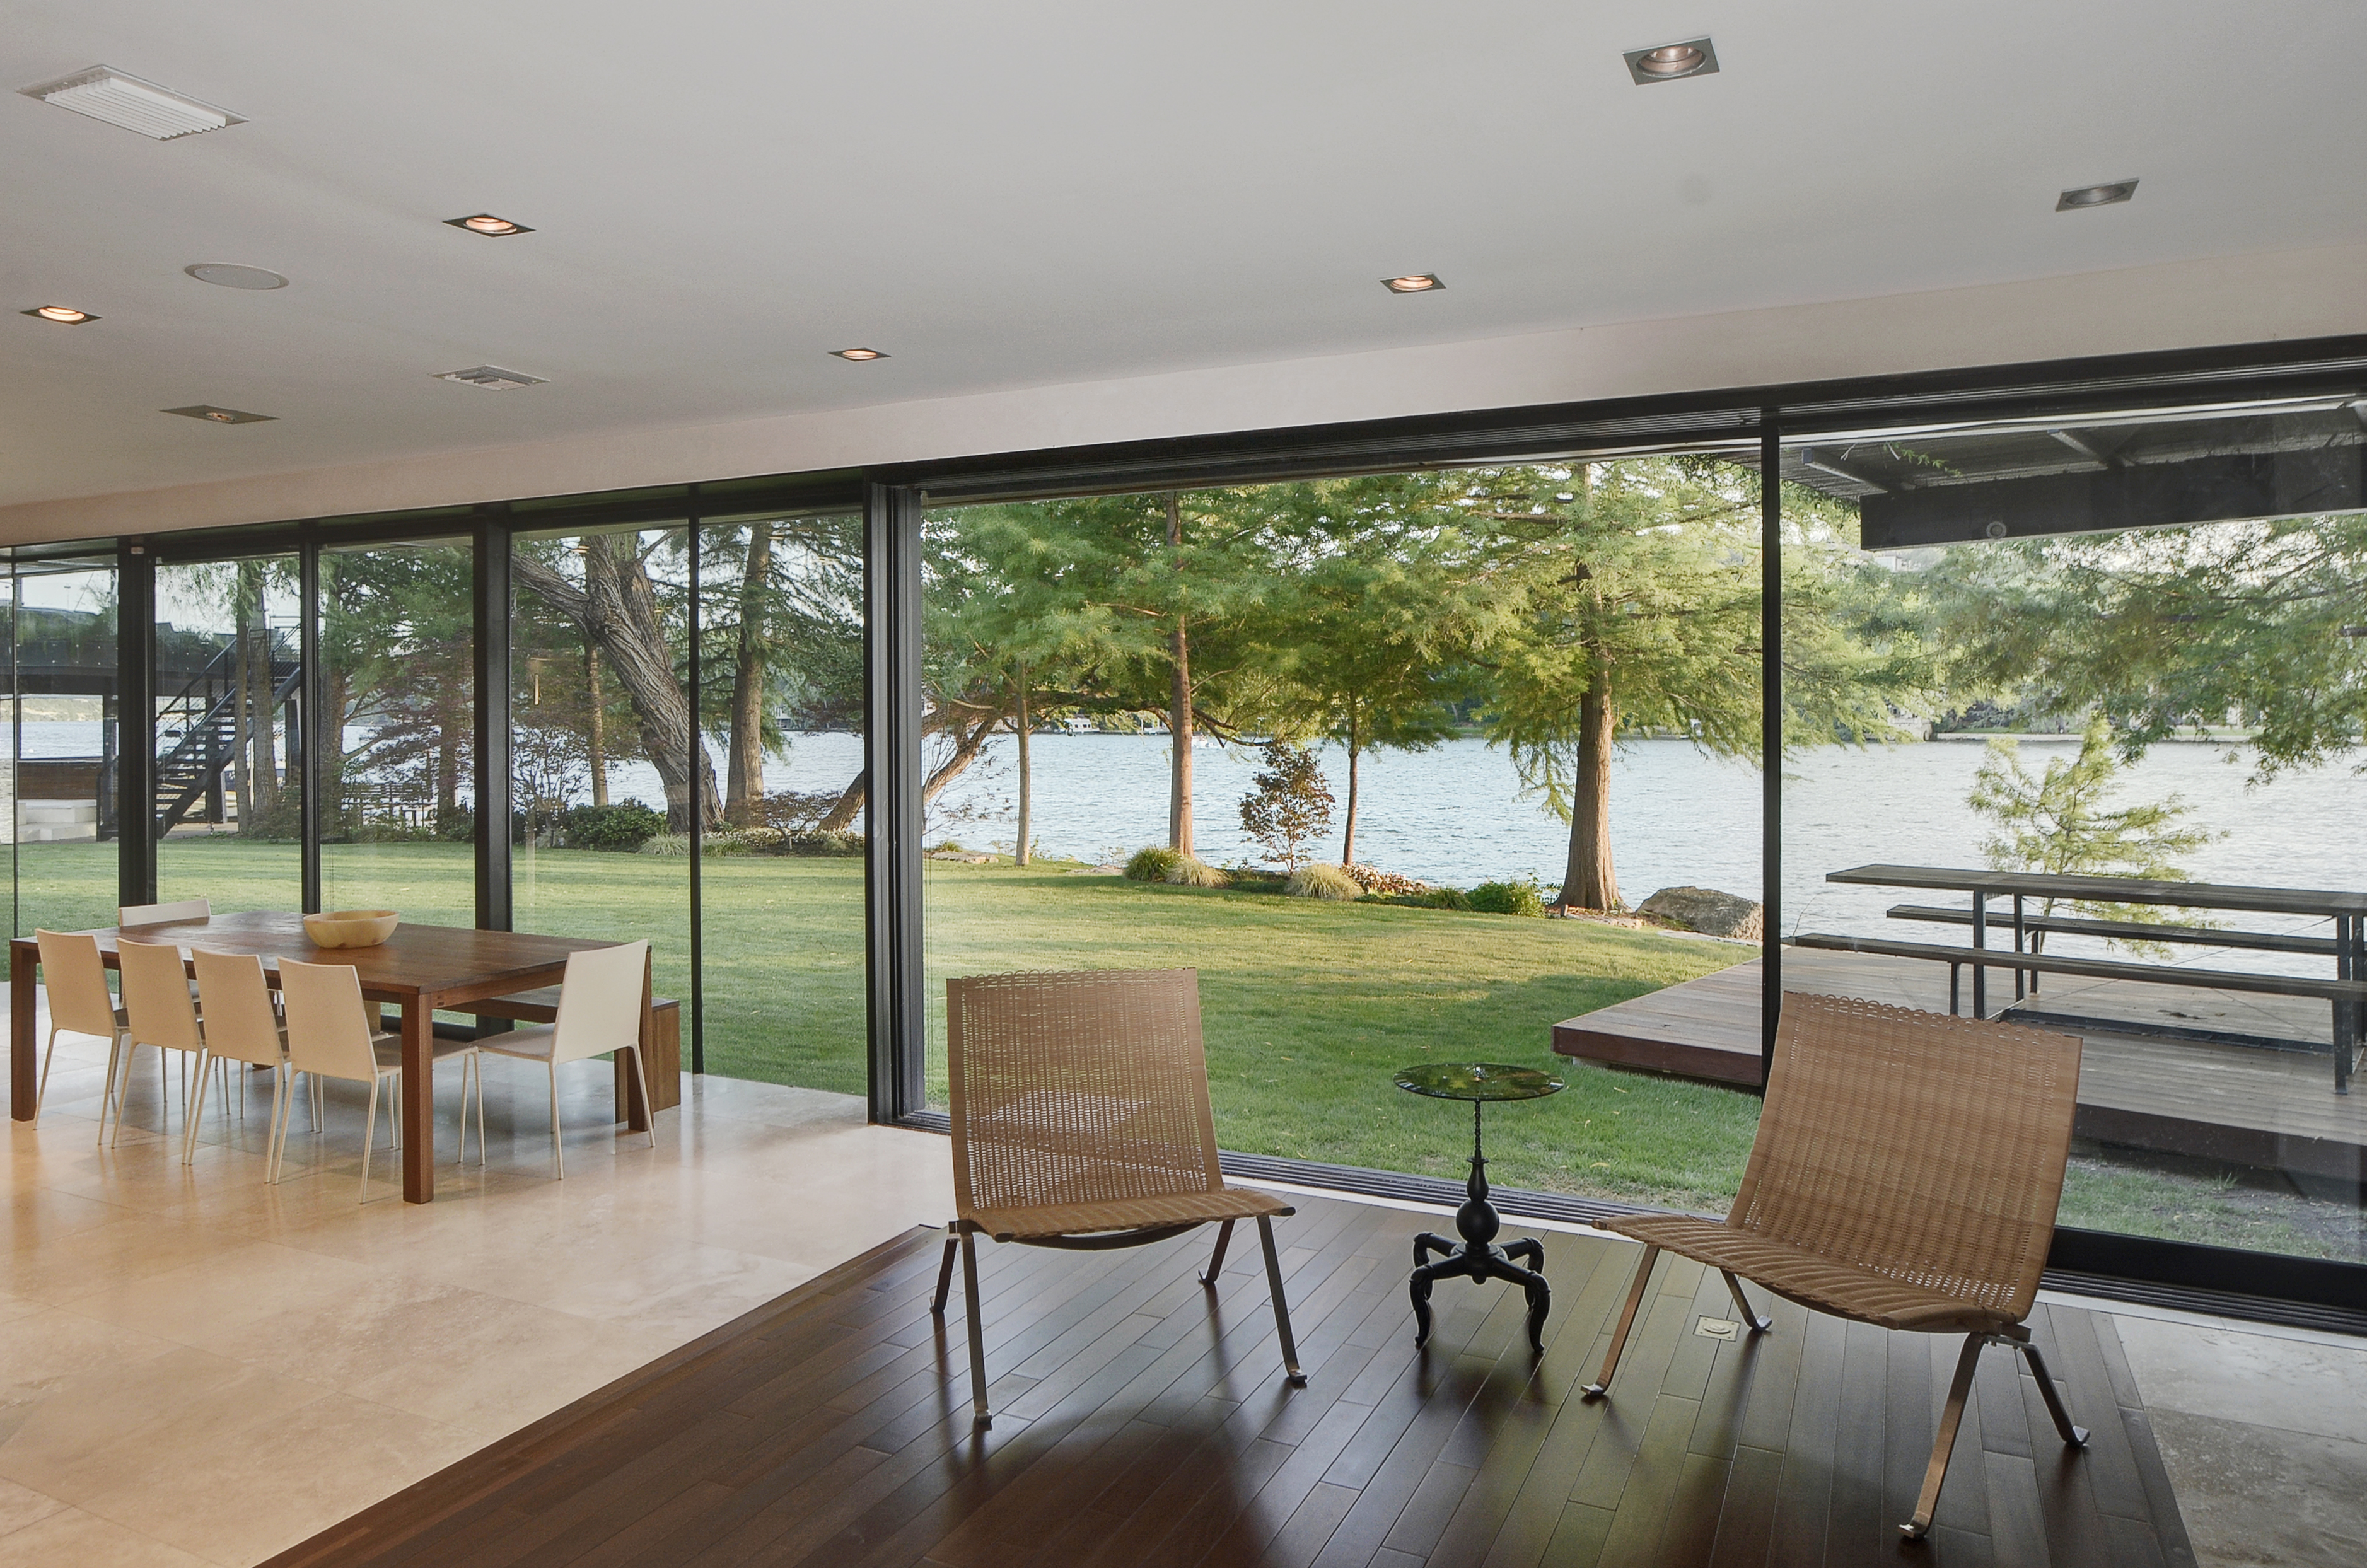 gorgeous lakeside contemporary asks 10 3m curbed austin the home also features a media room and a playroom a library and a rooftop garden as well as one for growing edible plants there s also a formal office